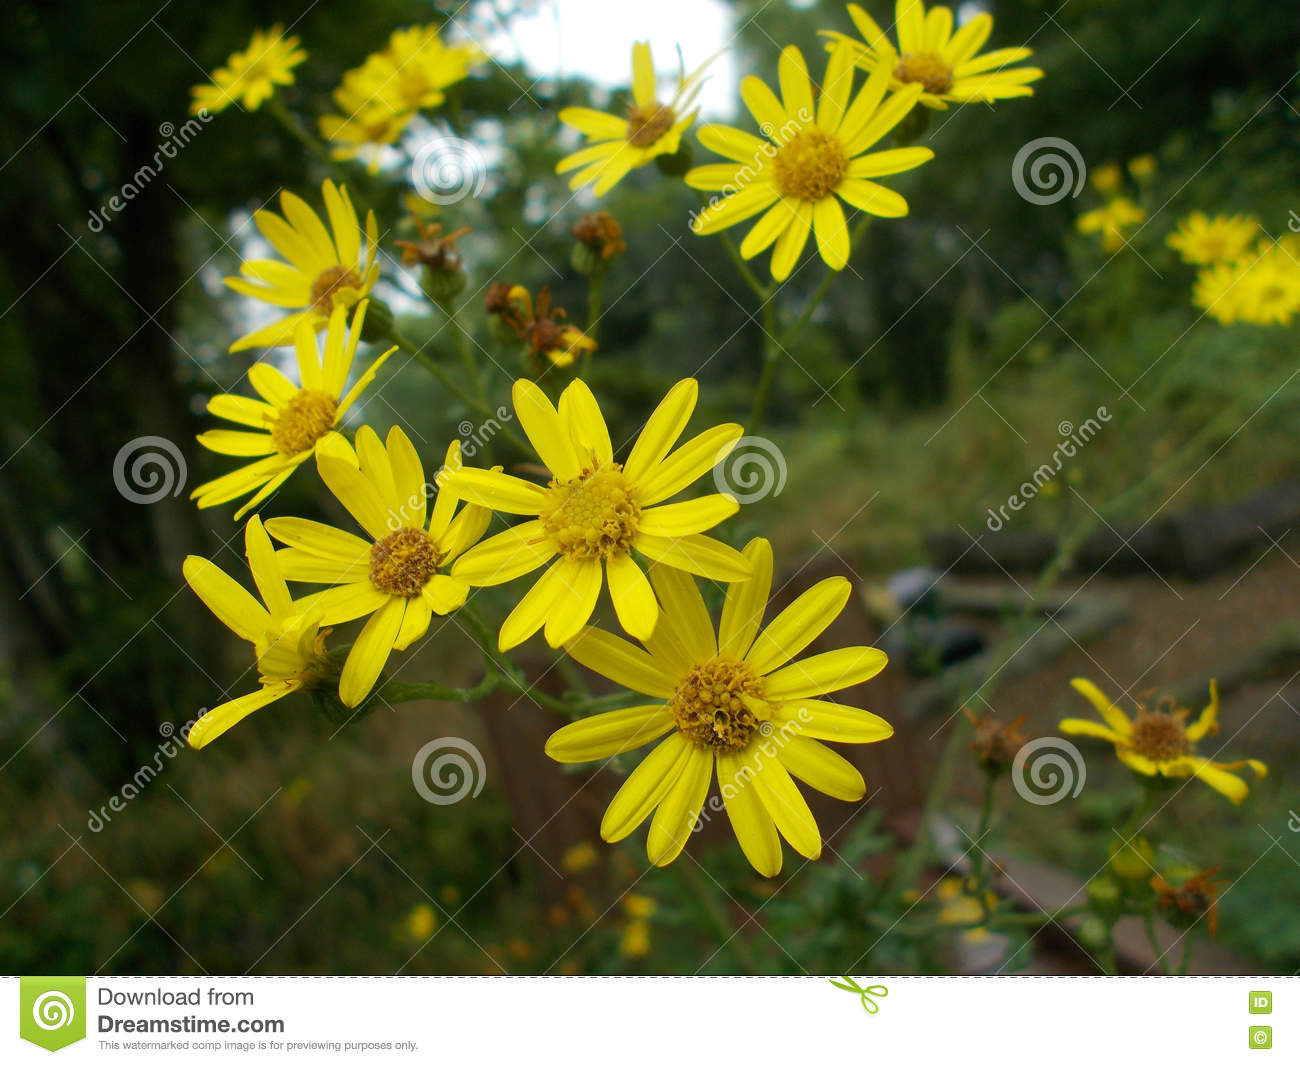 Euryops pectinatus yellow bush daisy stock photo image of flower download comp izmirmasajfo